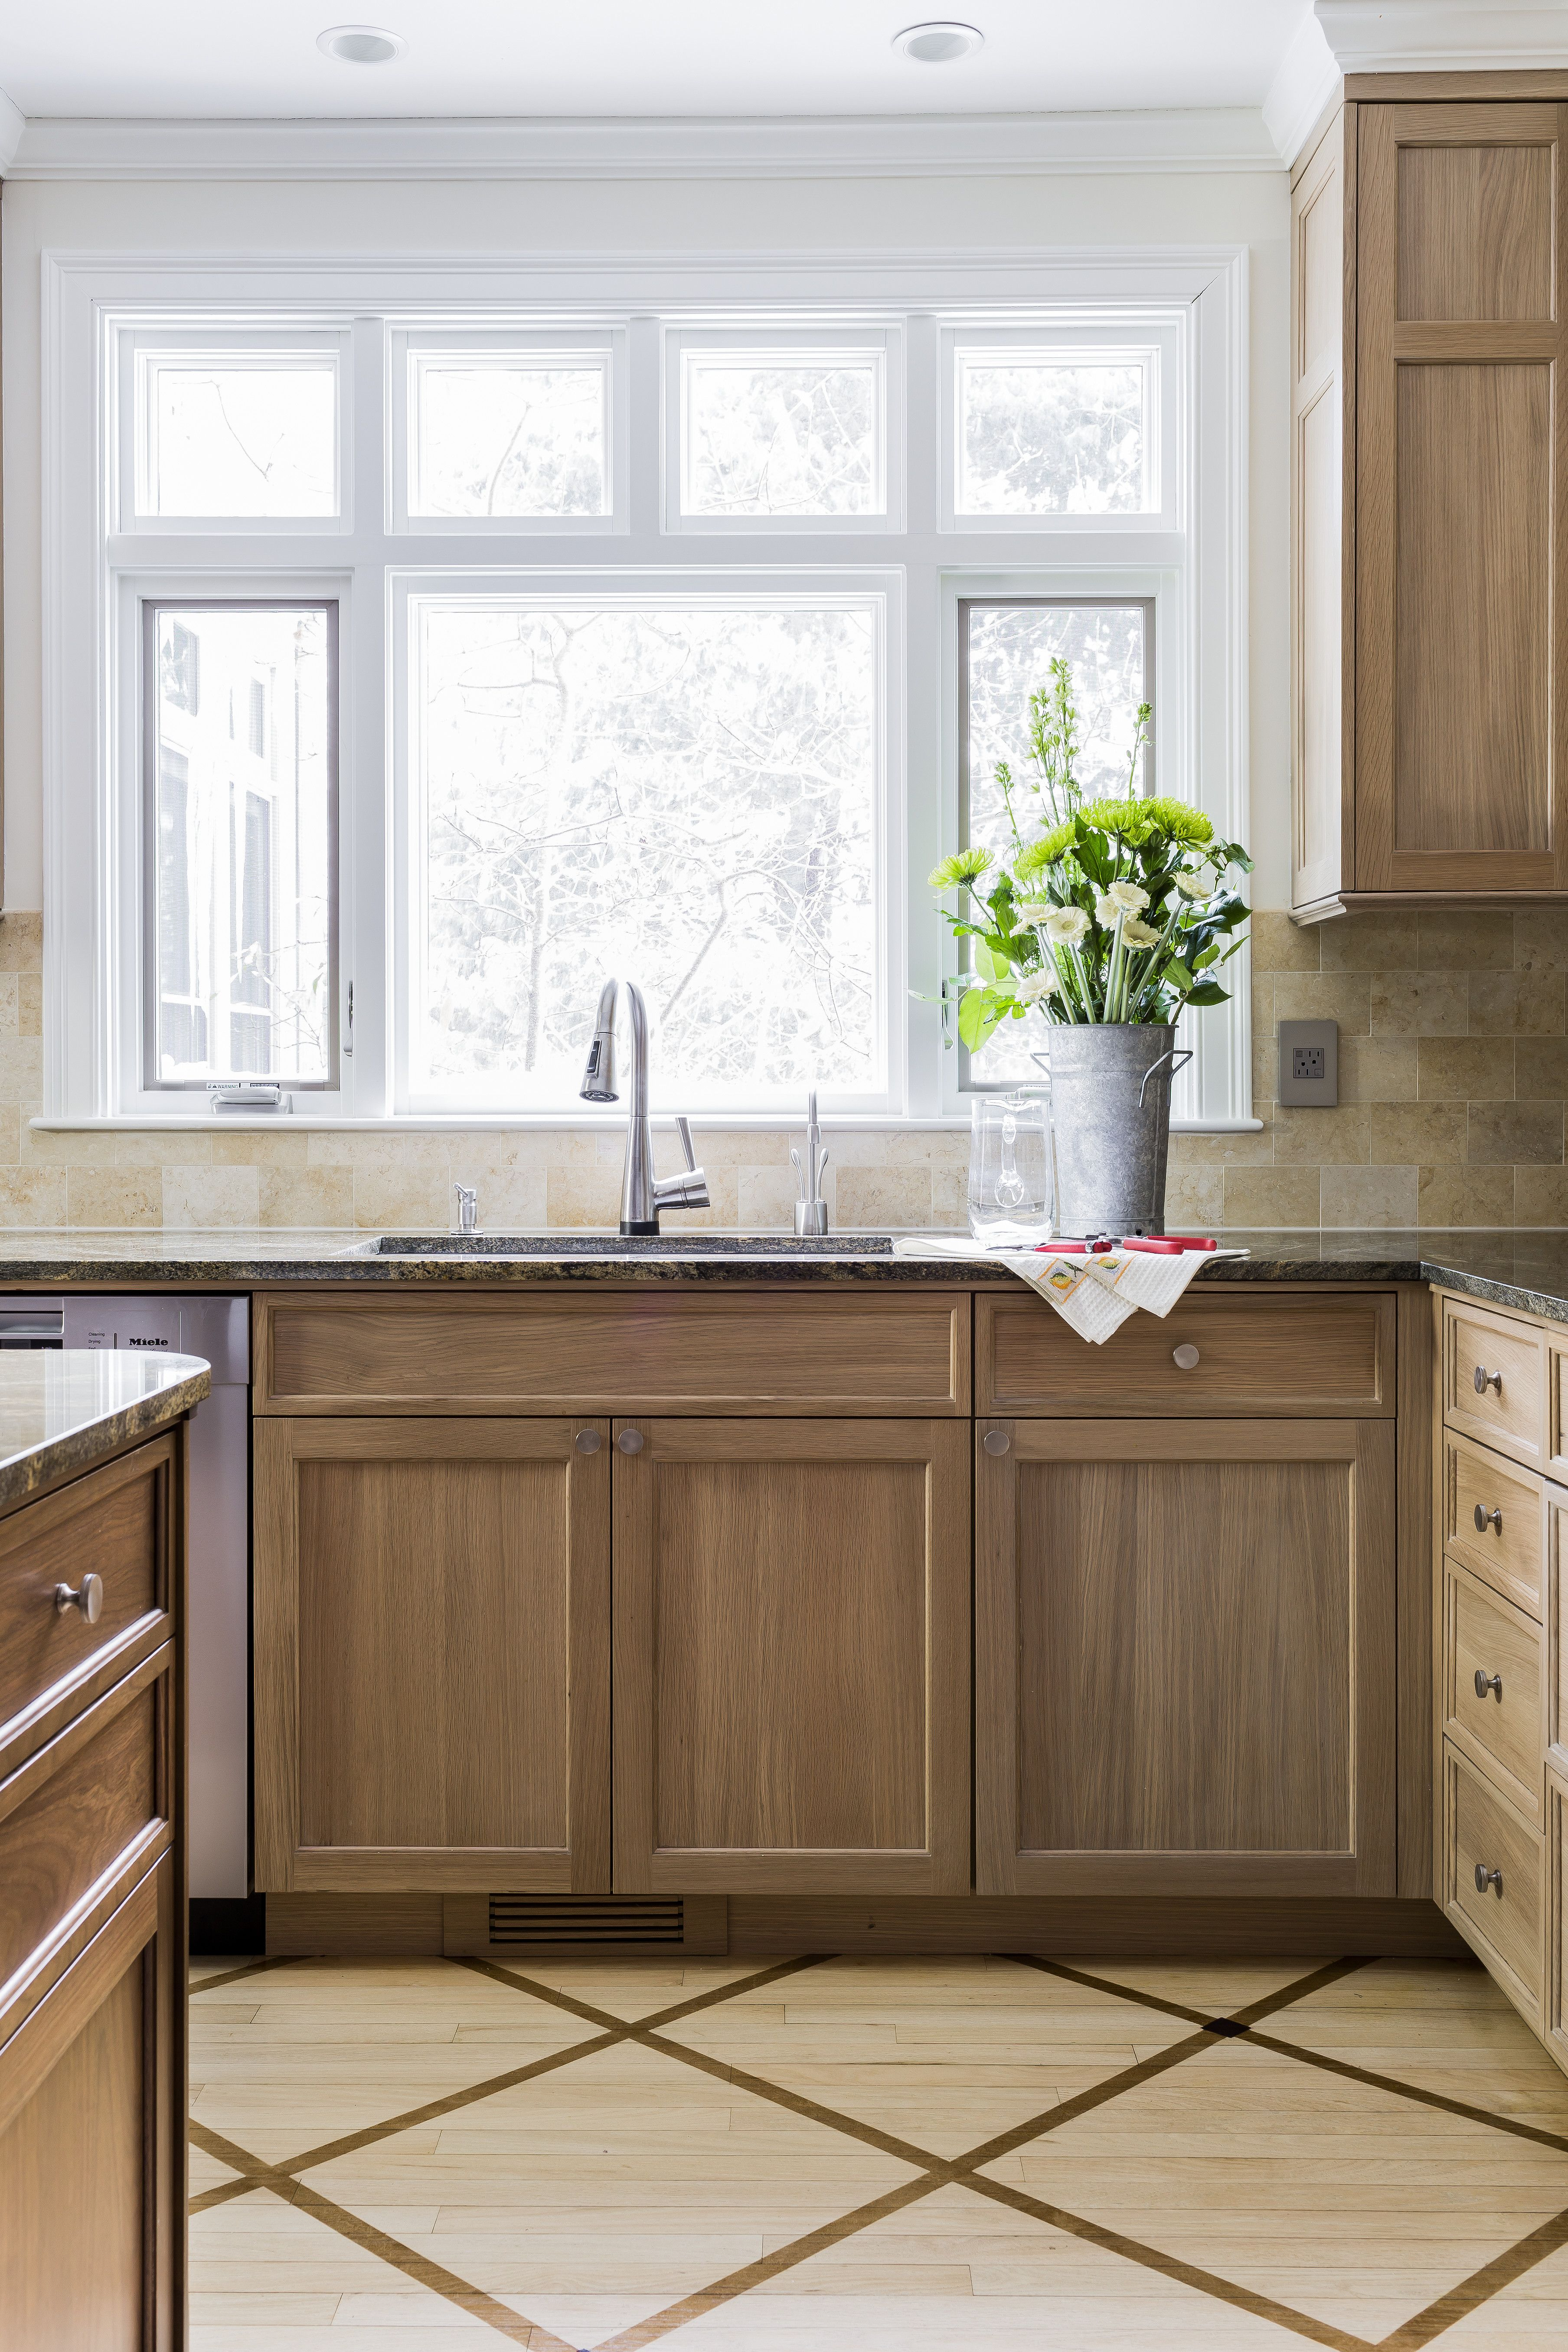 We Widened The Over Sink Window And Added A Transom Above For More Sunlight This Wilson K Kitchen Inspiration Design Kitchen Design Traditional Kitchen Design